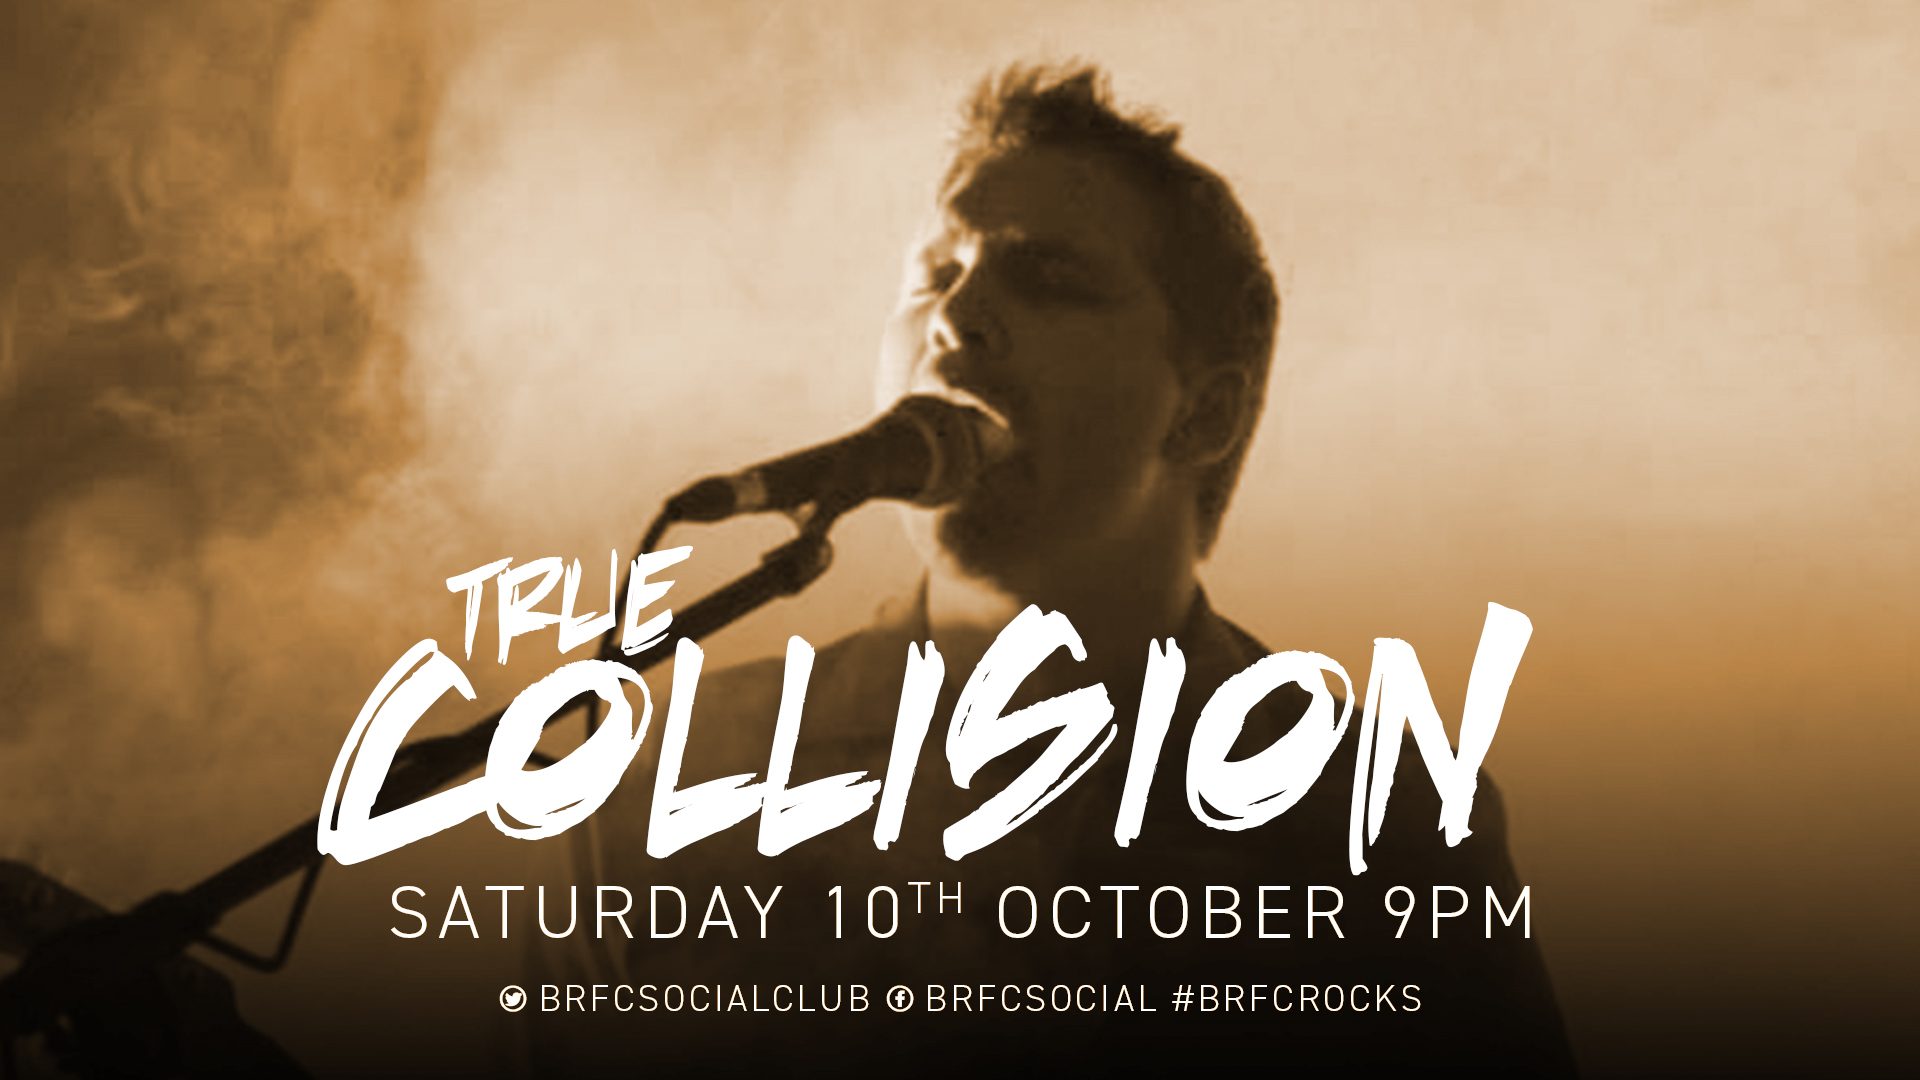 Live: True Collision